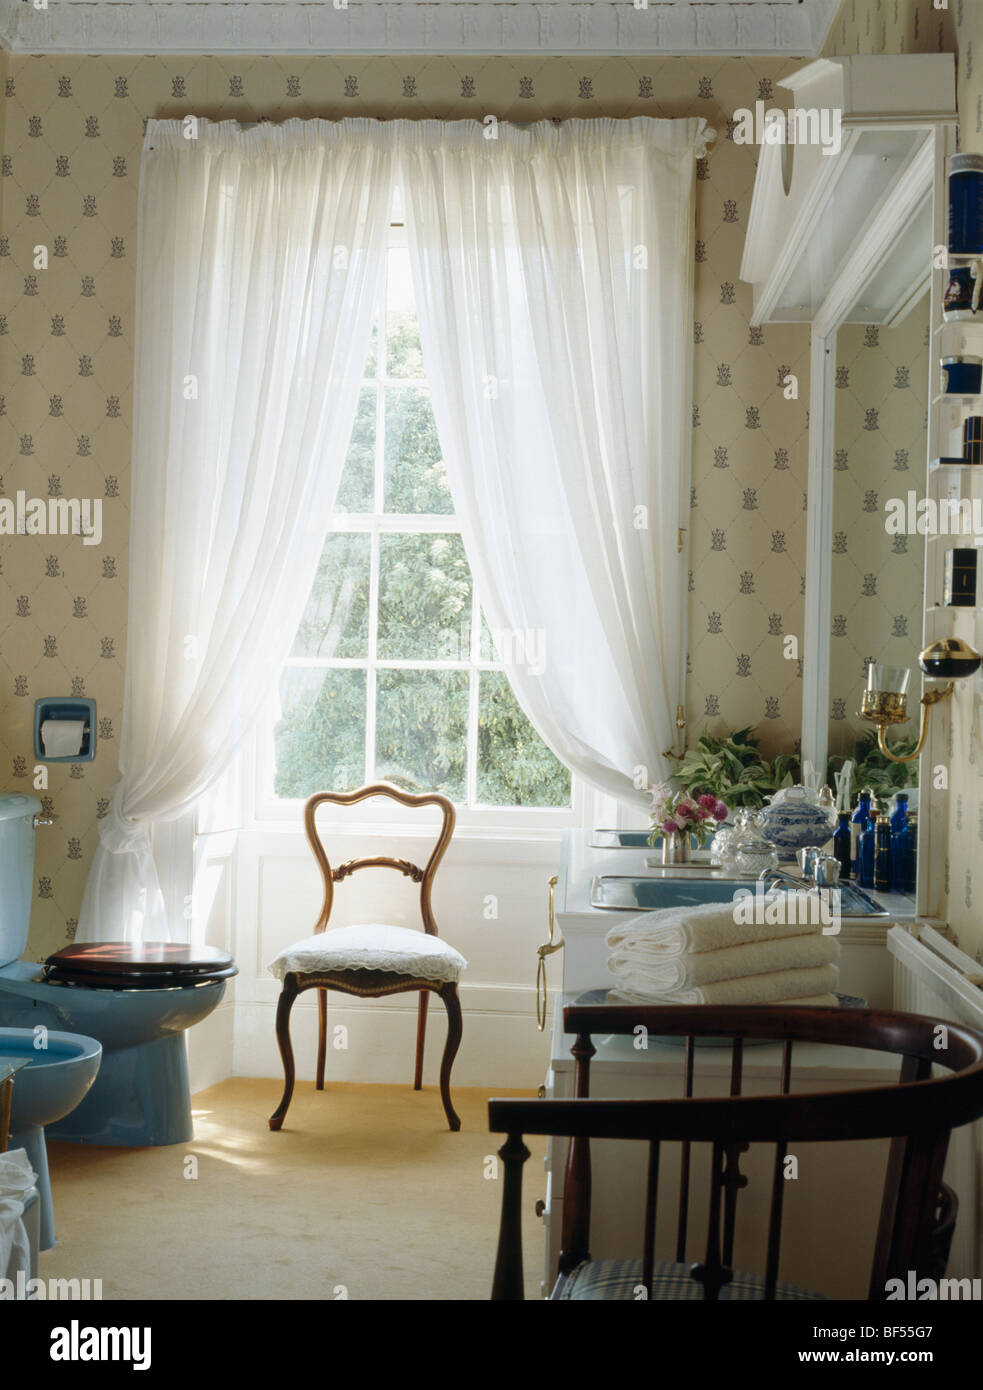 Antique chair in front of tall window with white voile